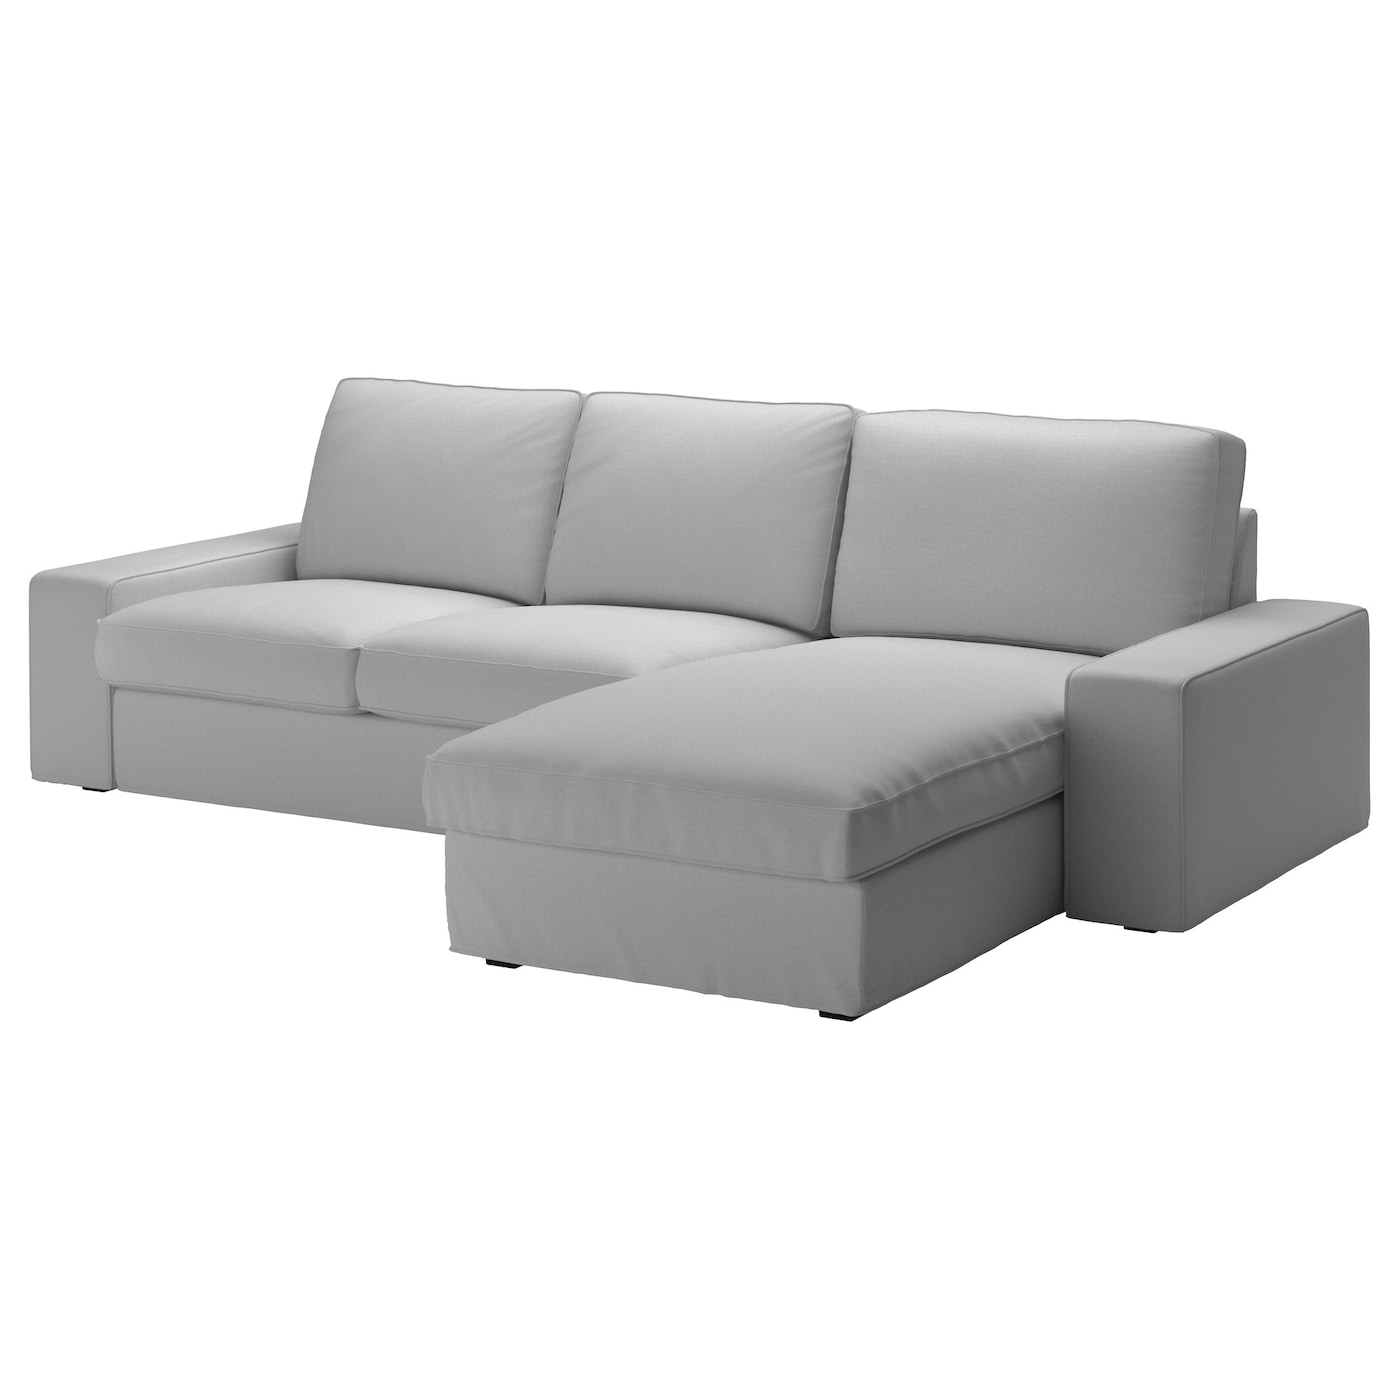 Kivik 3 Seat Sofa Orrsta With Chaise